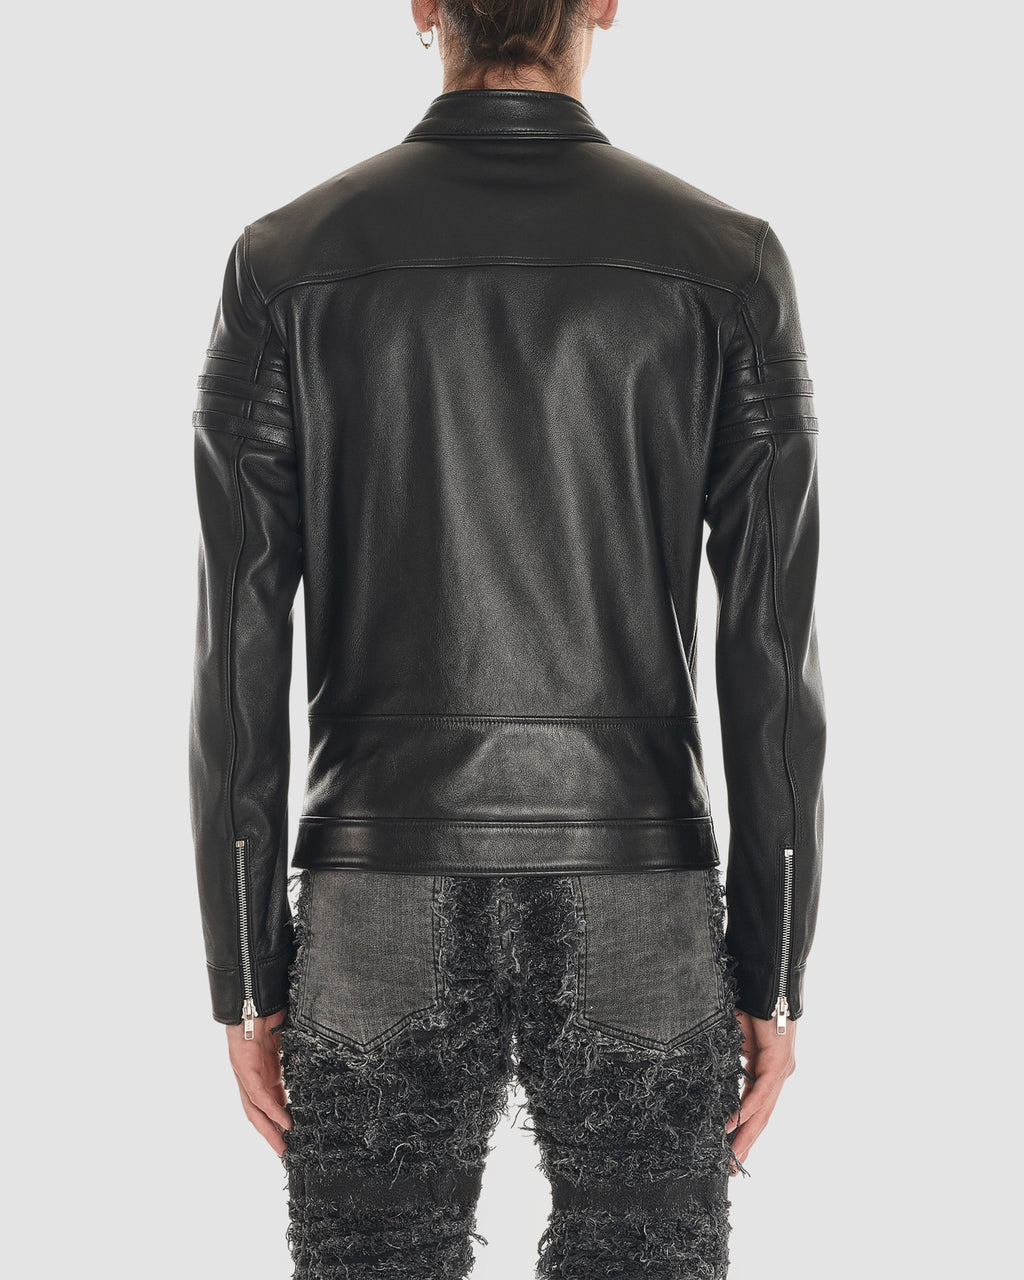 1017 ALYX 9SM | BLACKMEANS LEATHER BIKER JACKET | Outerwear | 60OFFF19LC, Black, BLACKMEANS, F19, Man, Outerwear